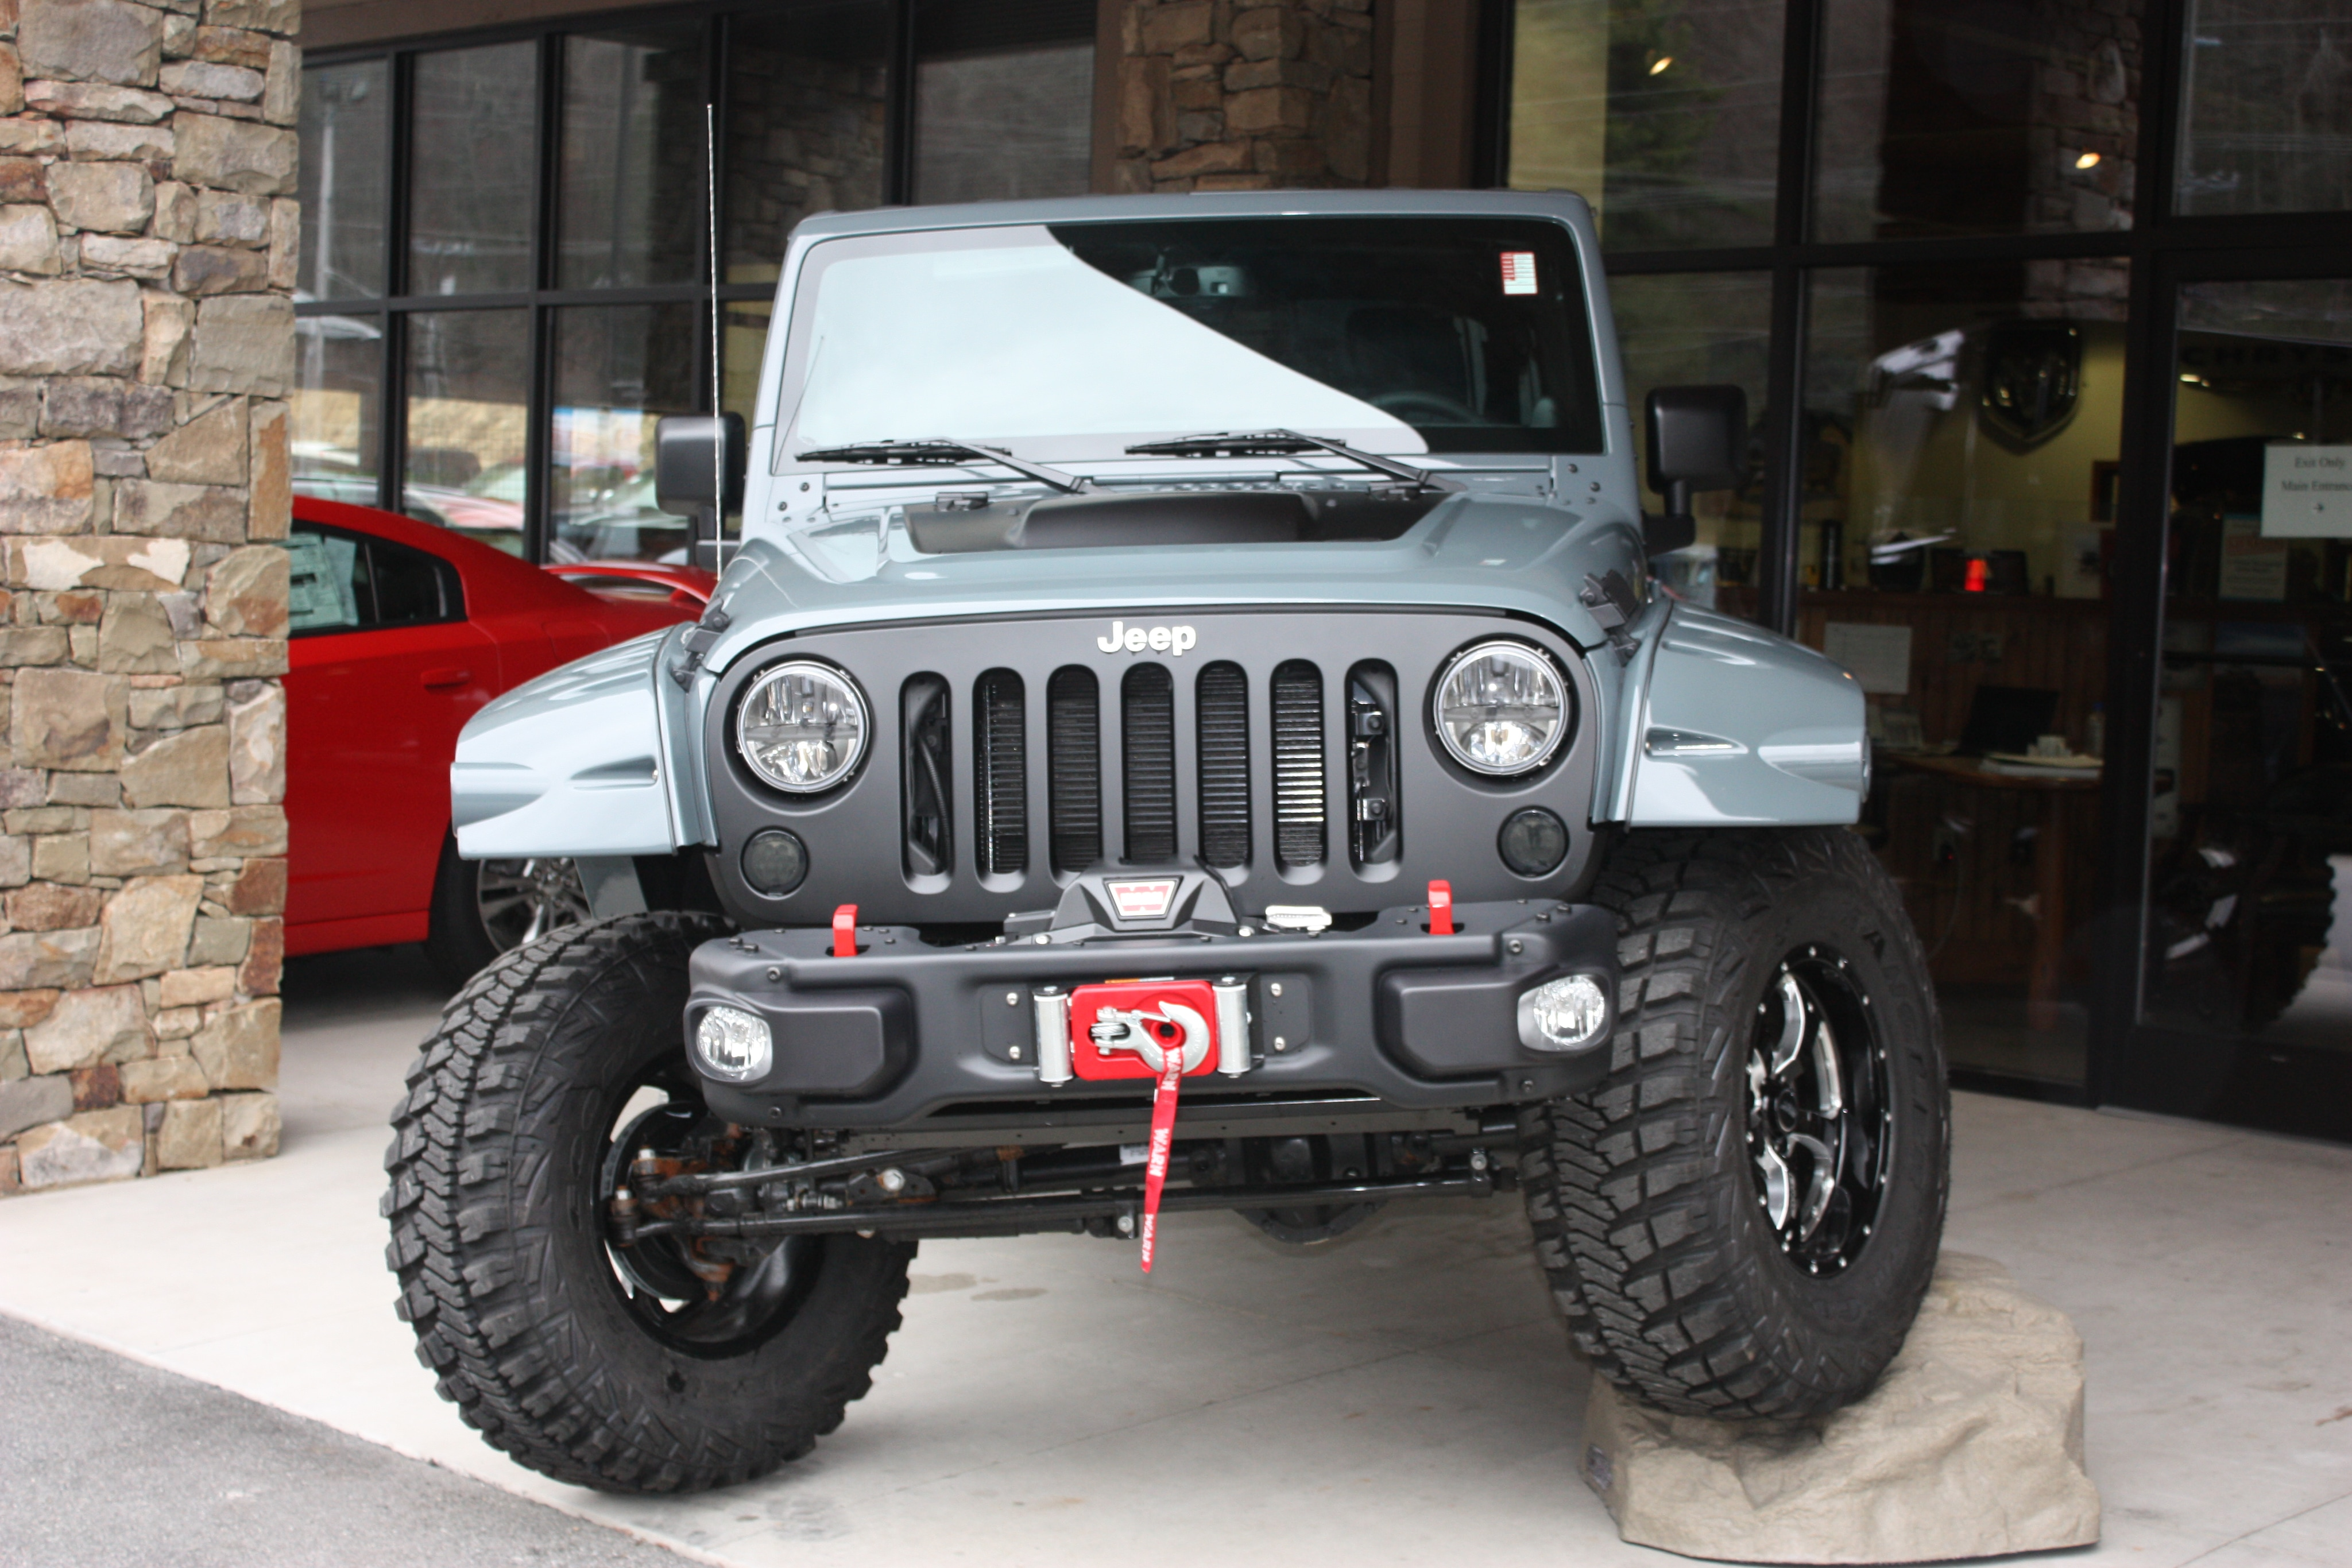 Parts Accessories To Customize Your Jeep In Boone Nc Wrangler Bumper New Performance 2 Lift Kit